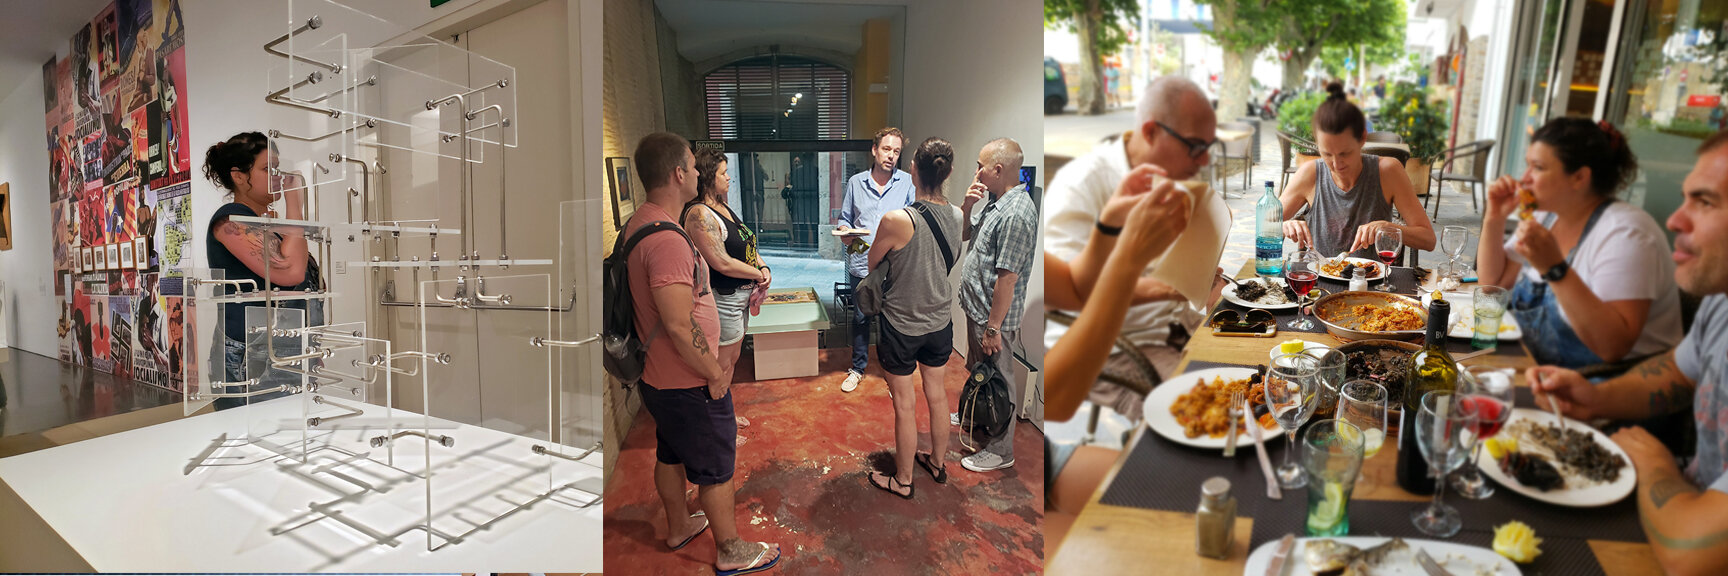 Left to right: Museum visits (MACBA), Gallery visits (Galeria Richard Vanderaa, Girona), Discussion over lunch in Cadaques after visiting Dali's house-studio.